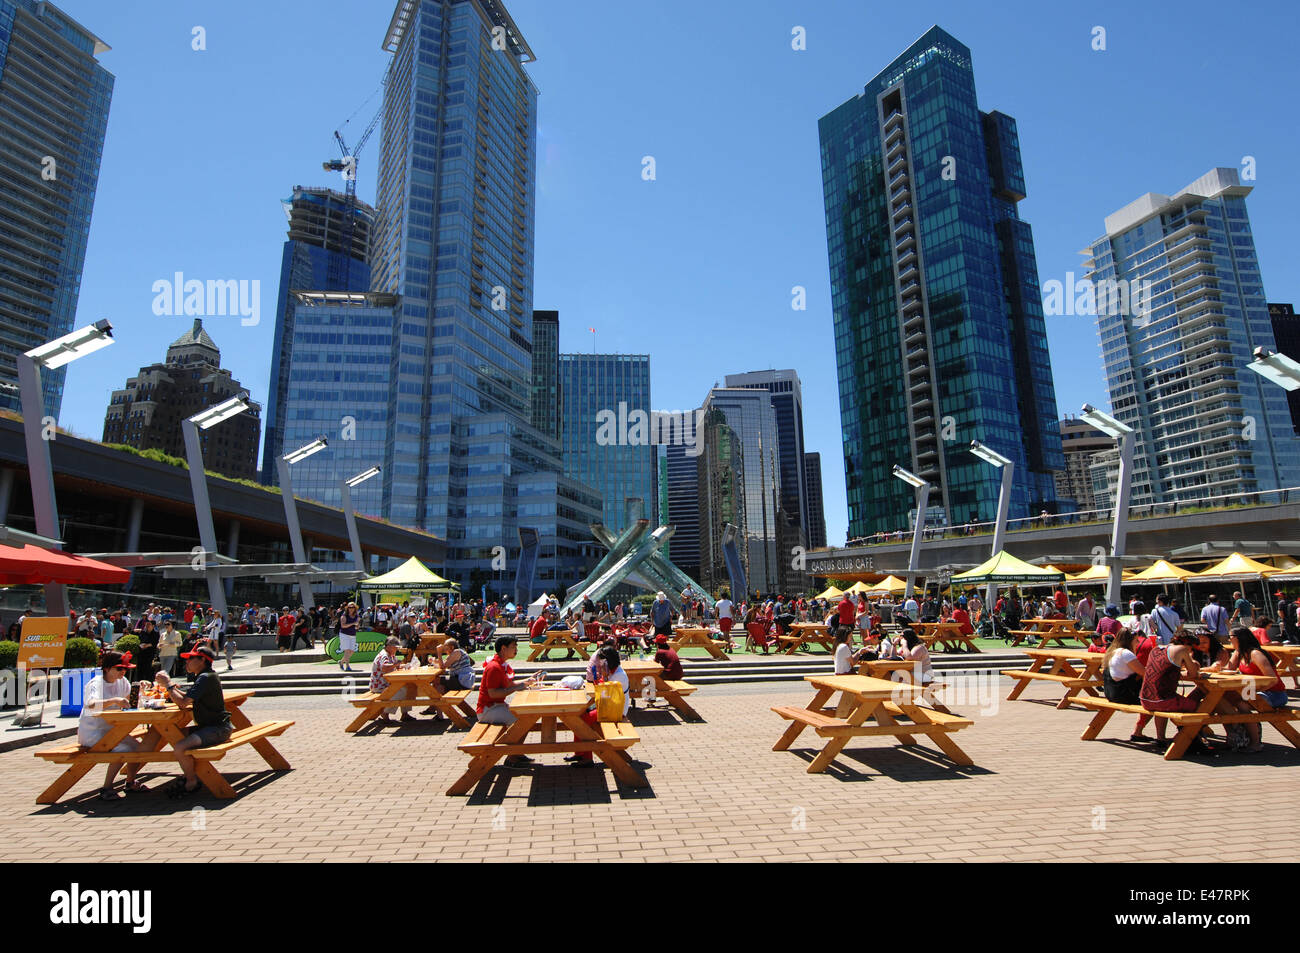 Vancouver, Canada. 4th July, 2014. People enjoy sunny day at Jack Poole plaza in Vancouver, Canada, July 4, 2014. - Stock Image